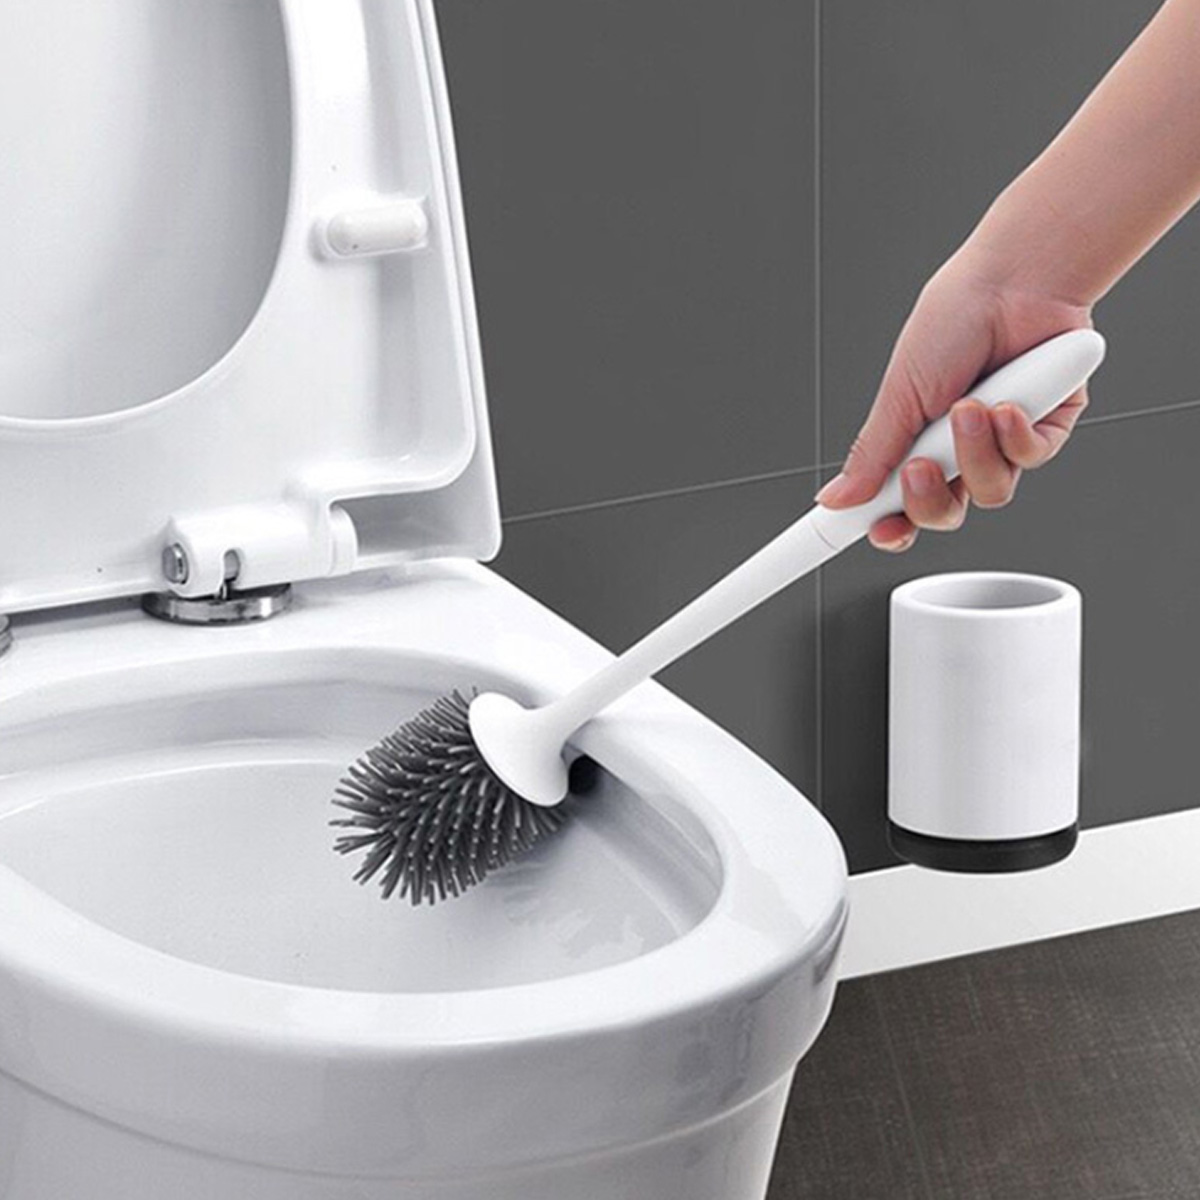 Toilet Brush Rubber Head Holder Cleaning Brush For Toilet Wall Hanging Household Floor Cleaning Tool Bathroom Accessories